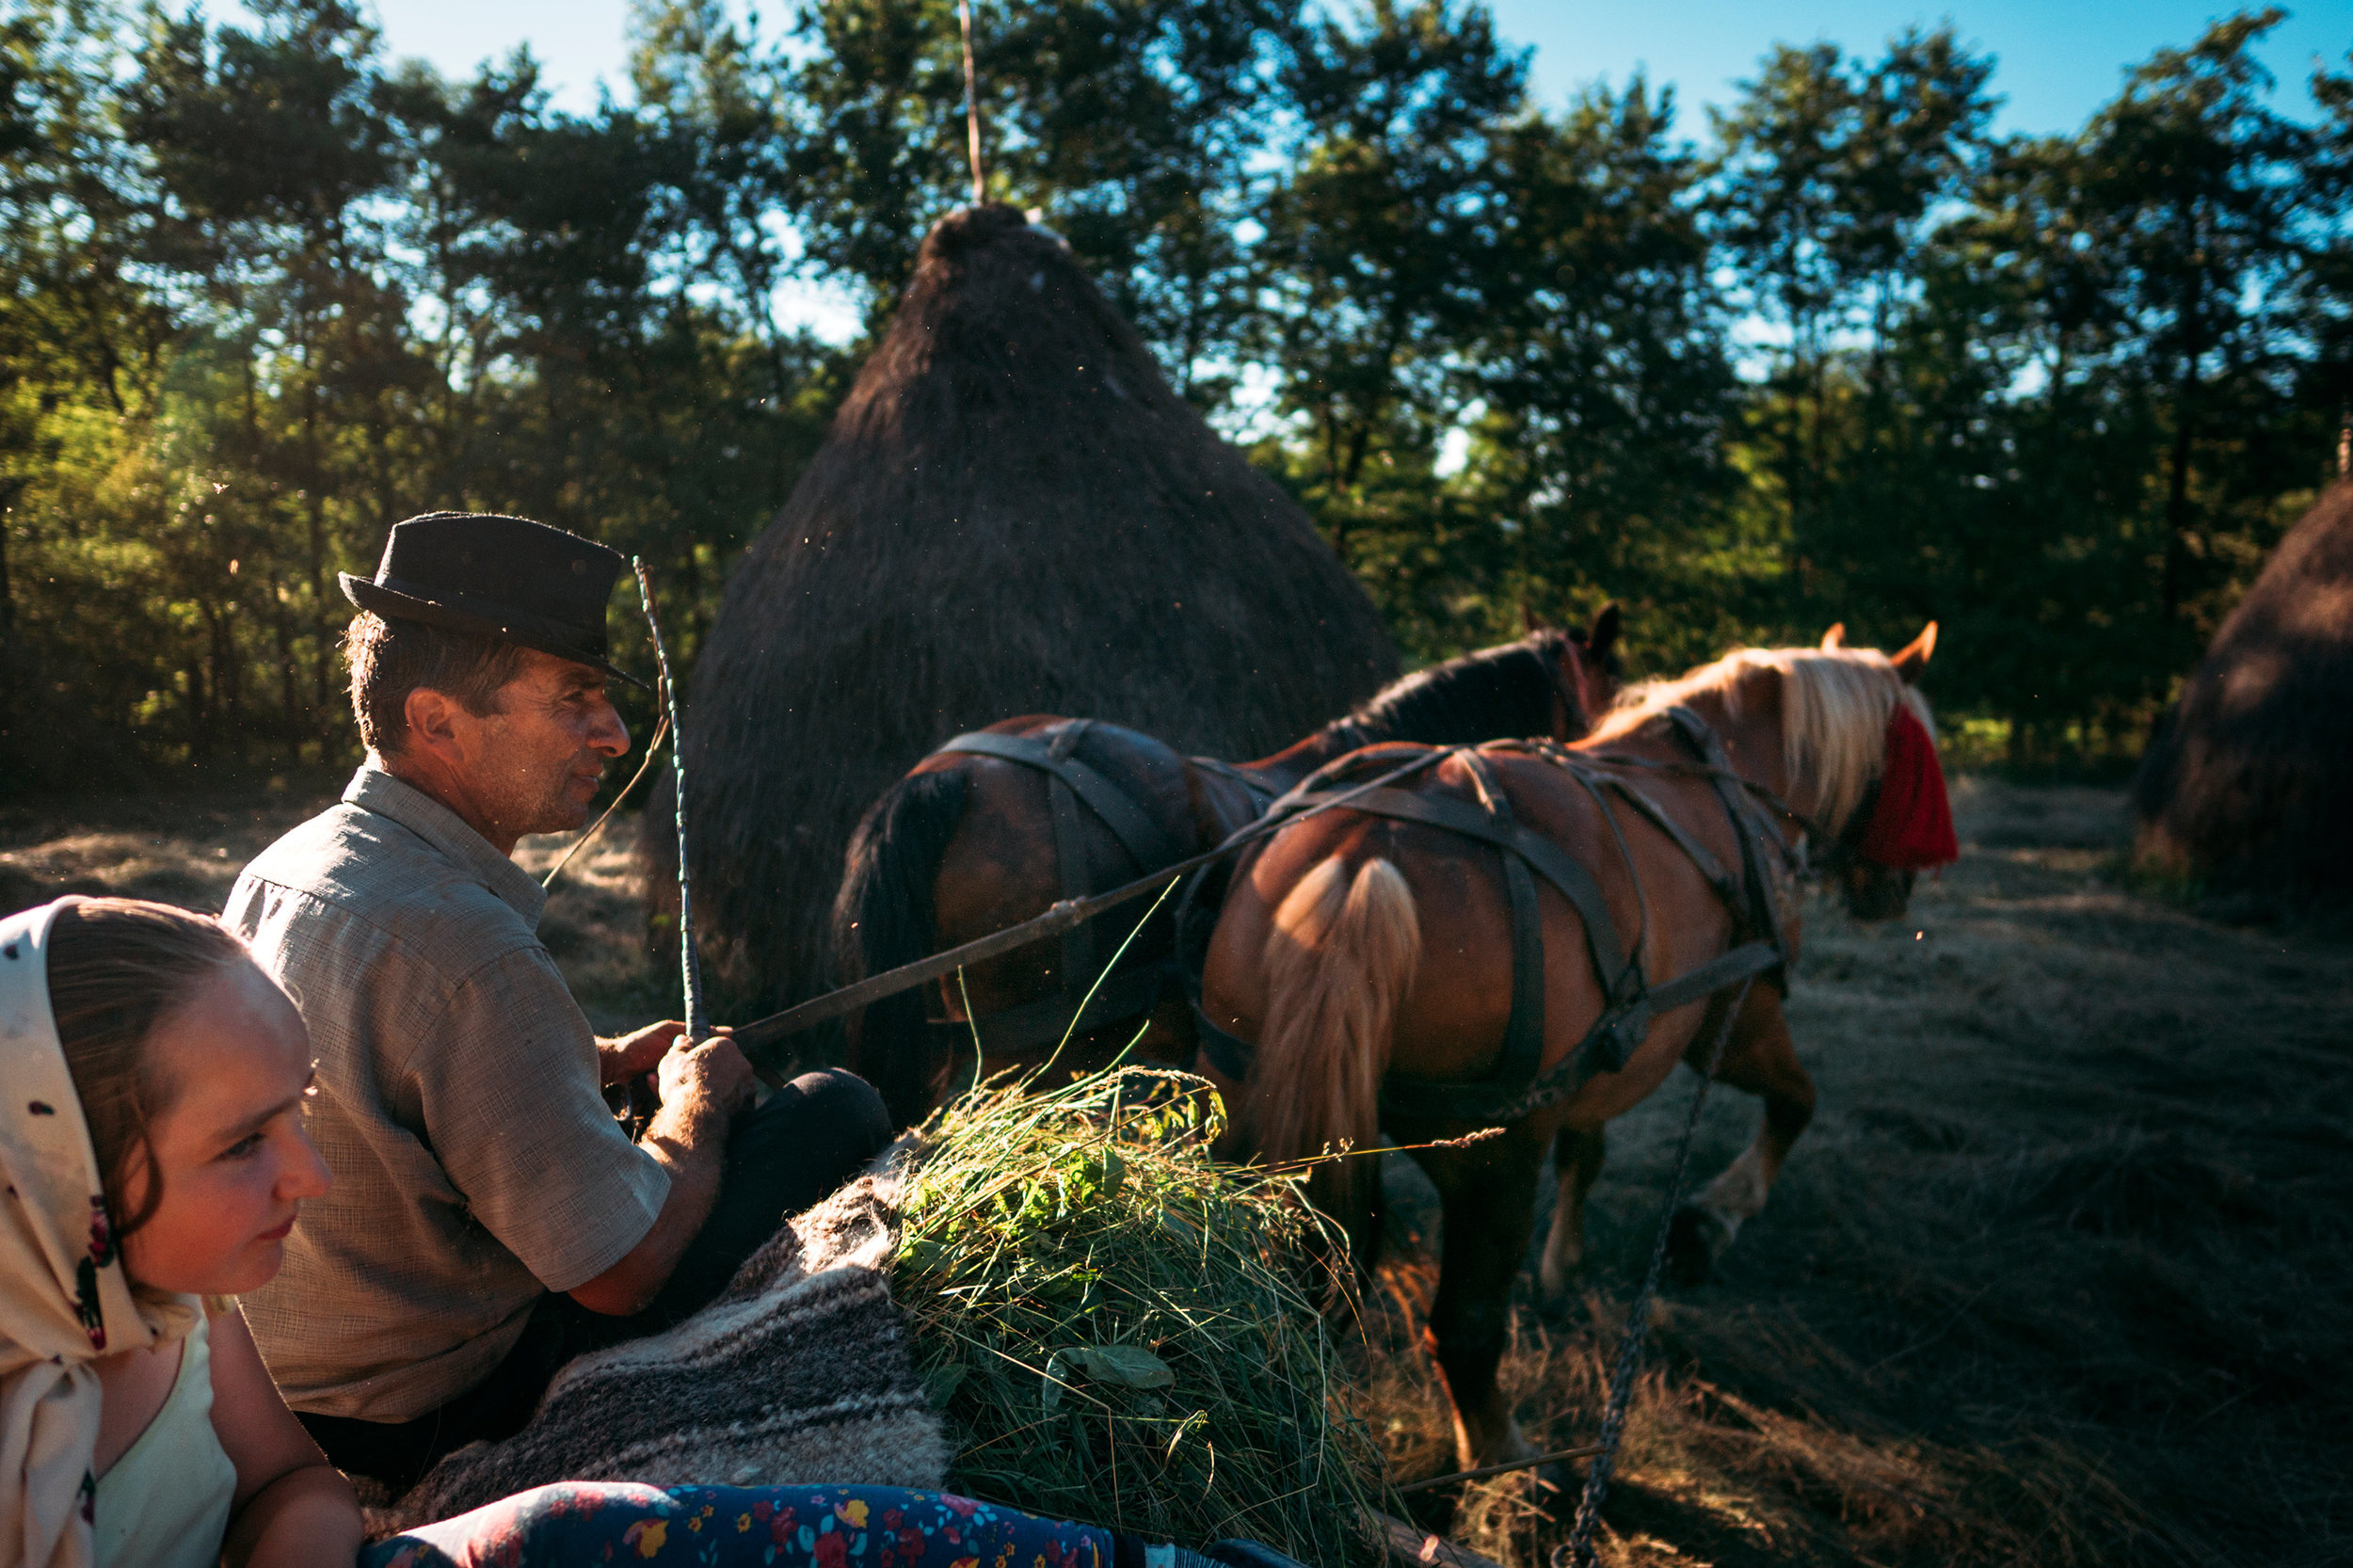 Maramure-Romania-father-and-daughter-on-horse-cart